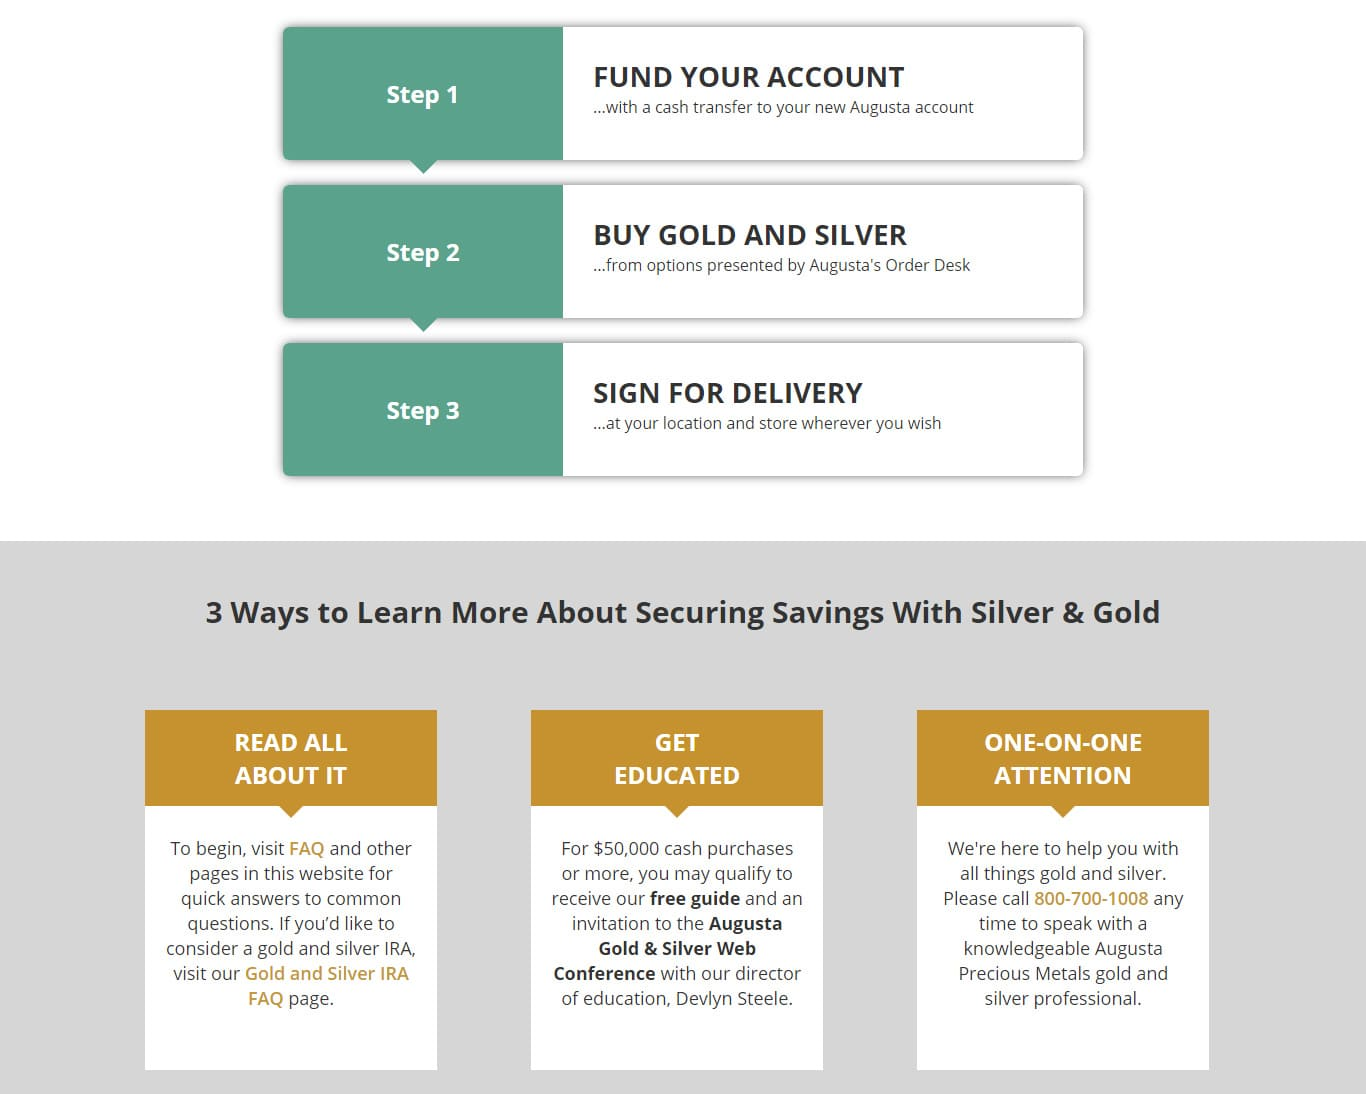 Purchasing Gold and Silver for Personal Investment